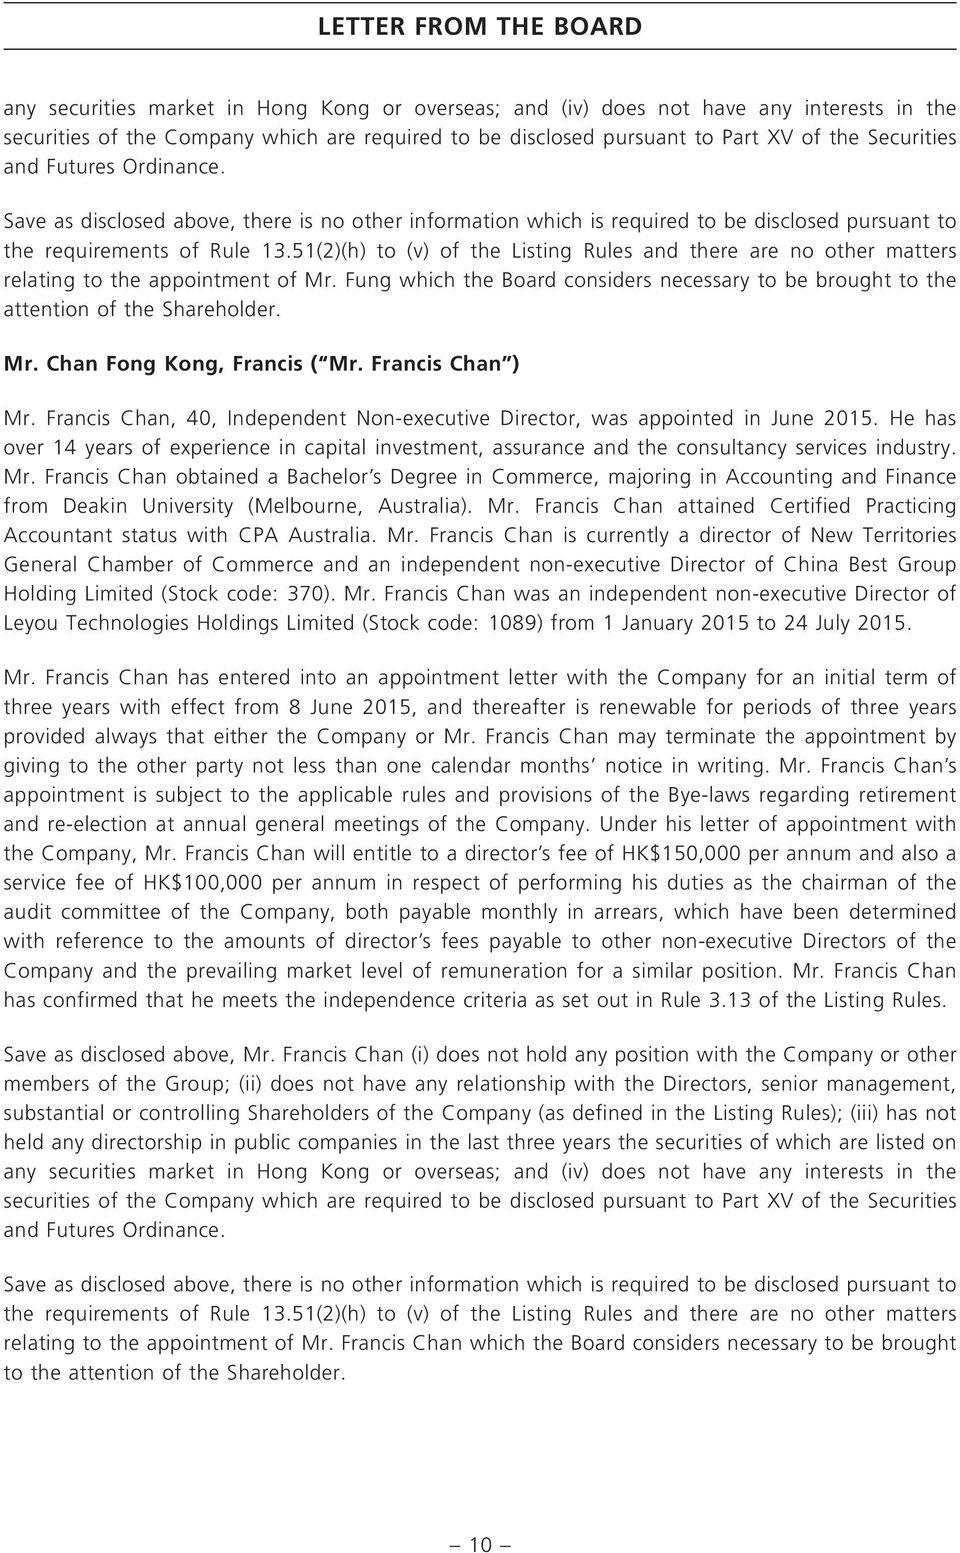 51(2)(h) to (v) of the Listing Rules and there are no other matters relating to the appointment of Mr. Fung which the Board considers necessary to be brought to the attention of the Shareholder. Mr. Chan Fong Kong, Francis ( Mr.